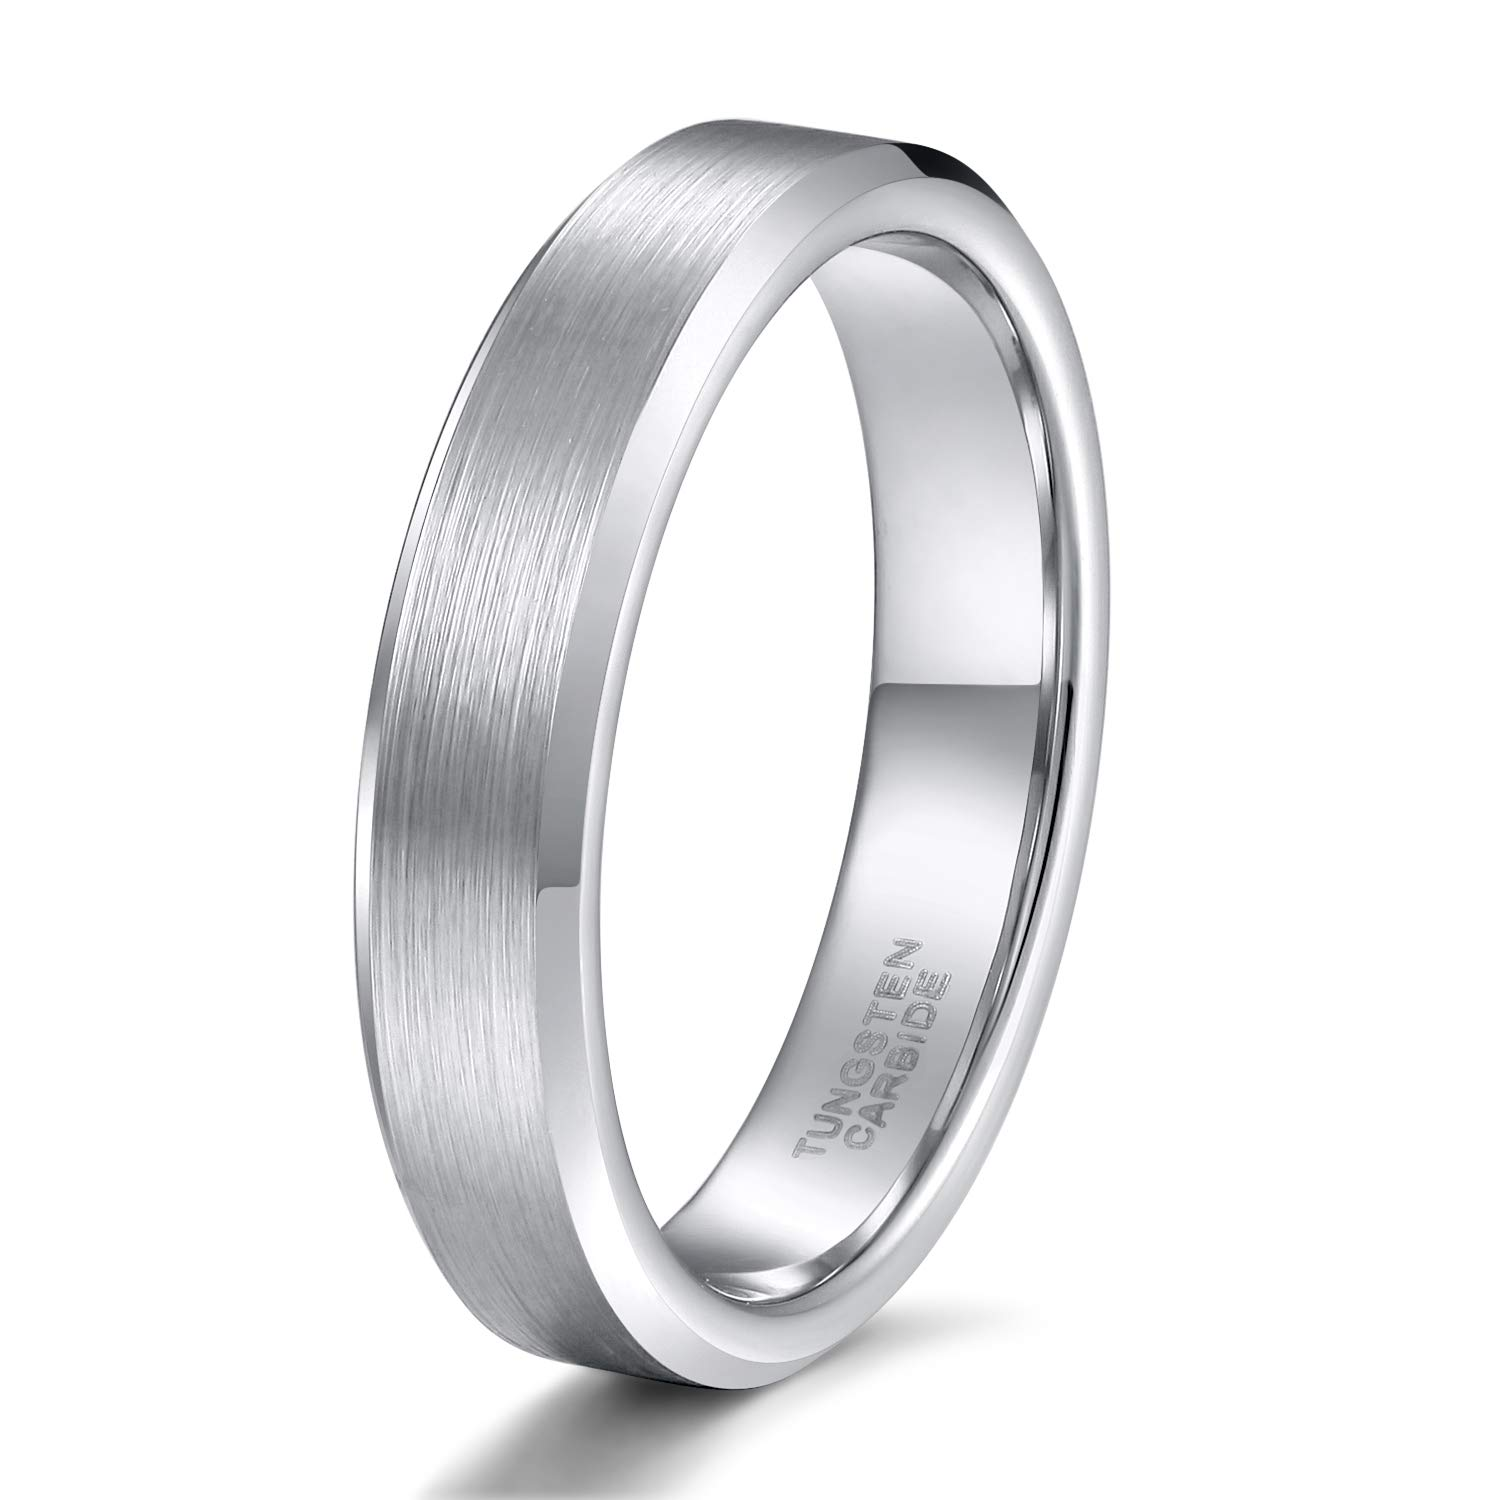 Shuremaster 4mm 6mm 8mm Tungsten Carbide Wedding Ring Band for Men Women Blue/Black/ Silver Comfort Fit Size 4-15 Shure-6954L